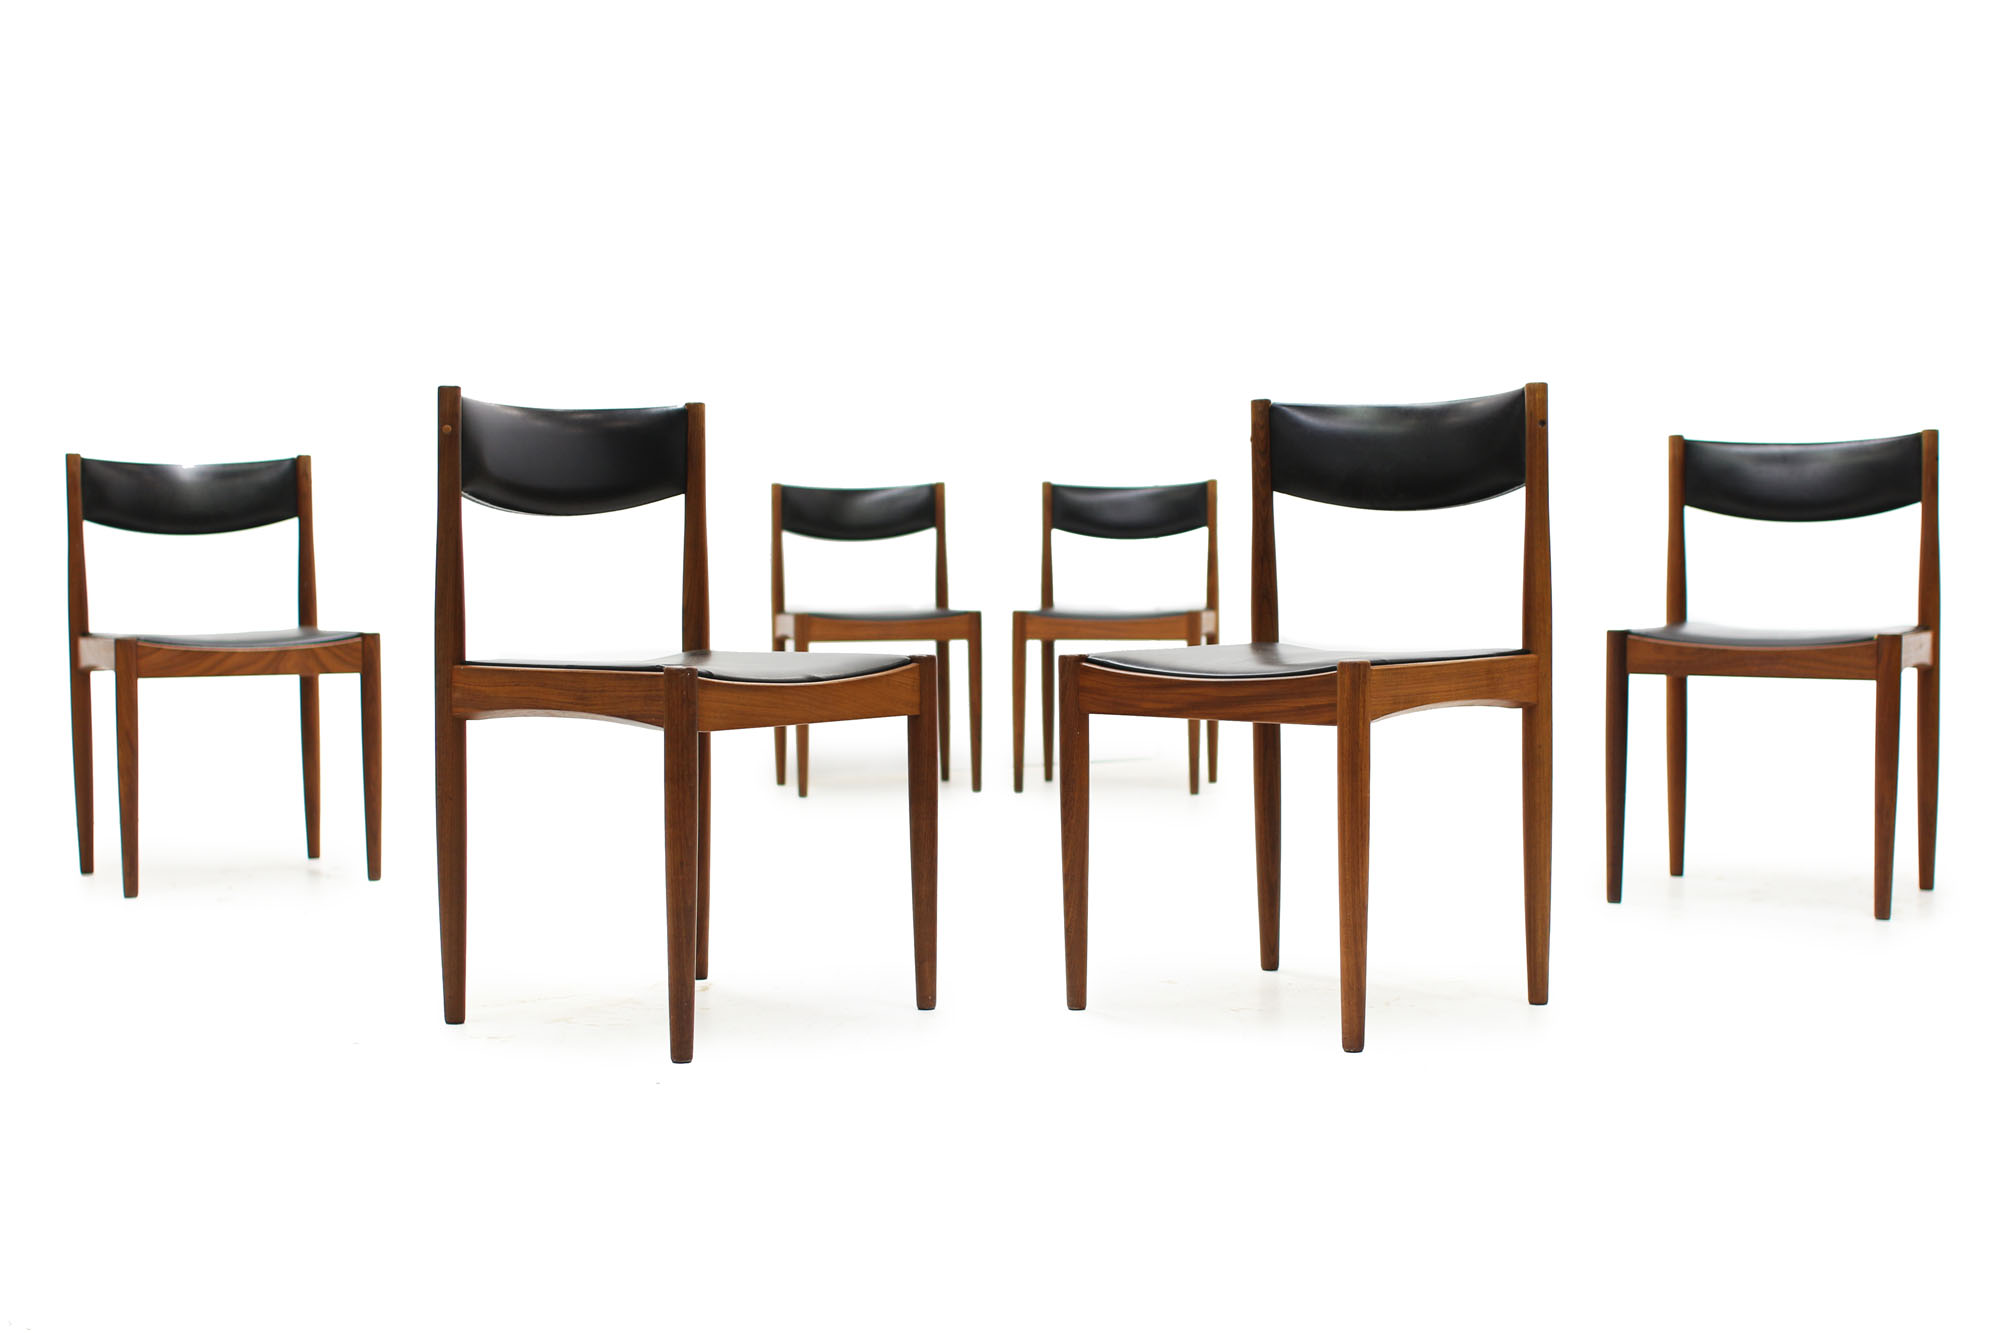 Set of 6 Mid Century Teak Dining Chairs designed by Poul Volther Made in Denmark (7).jpg